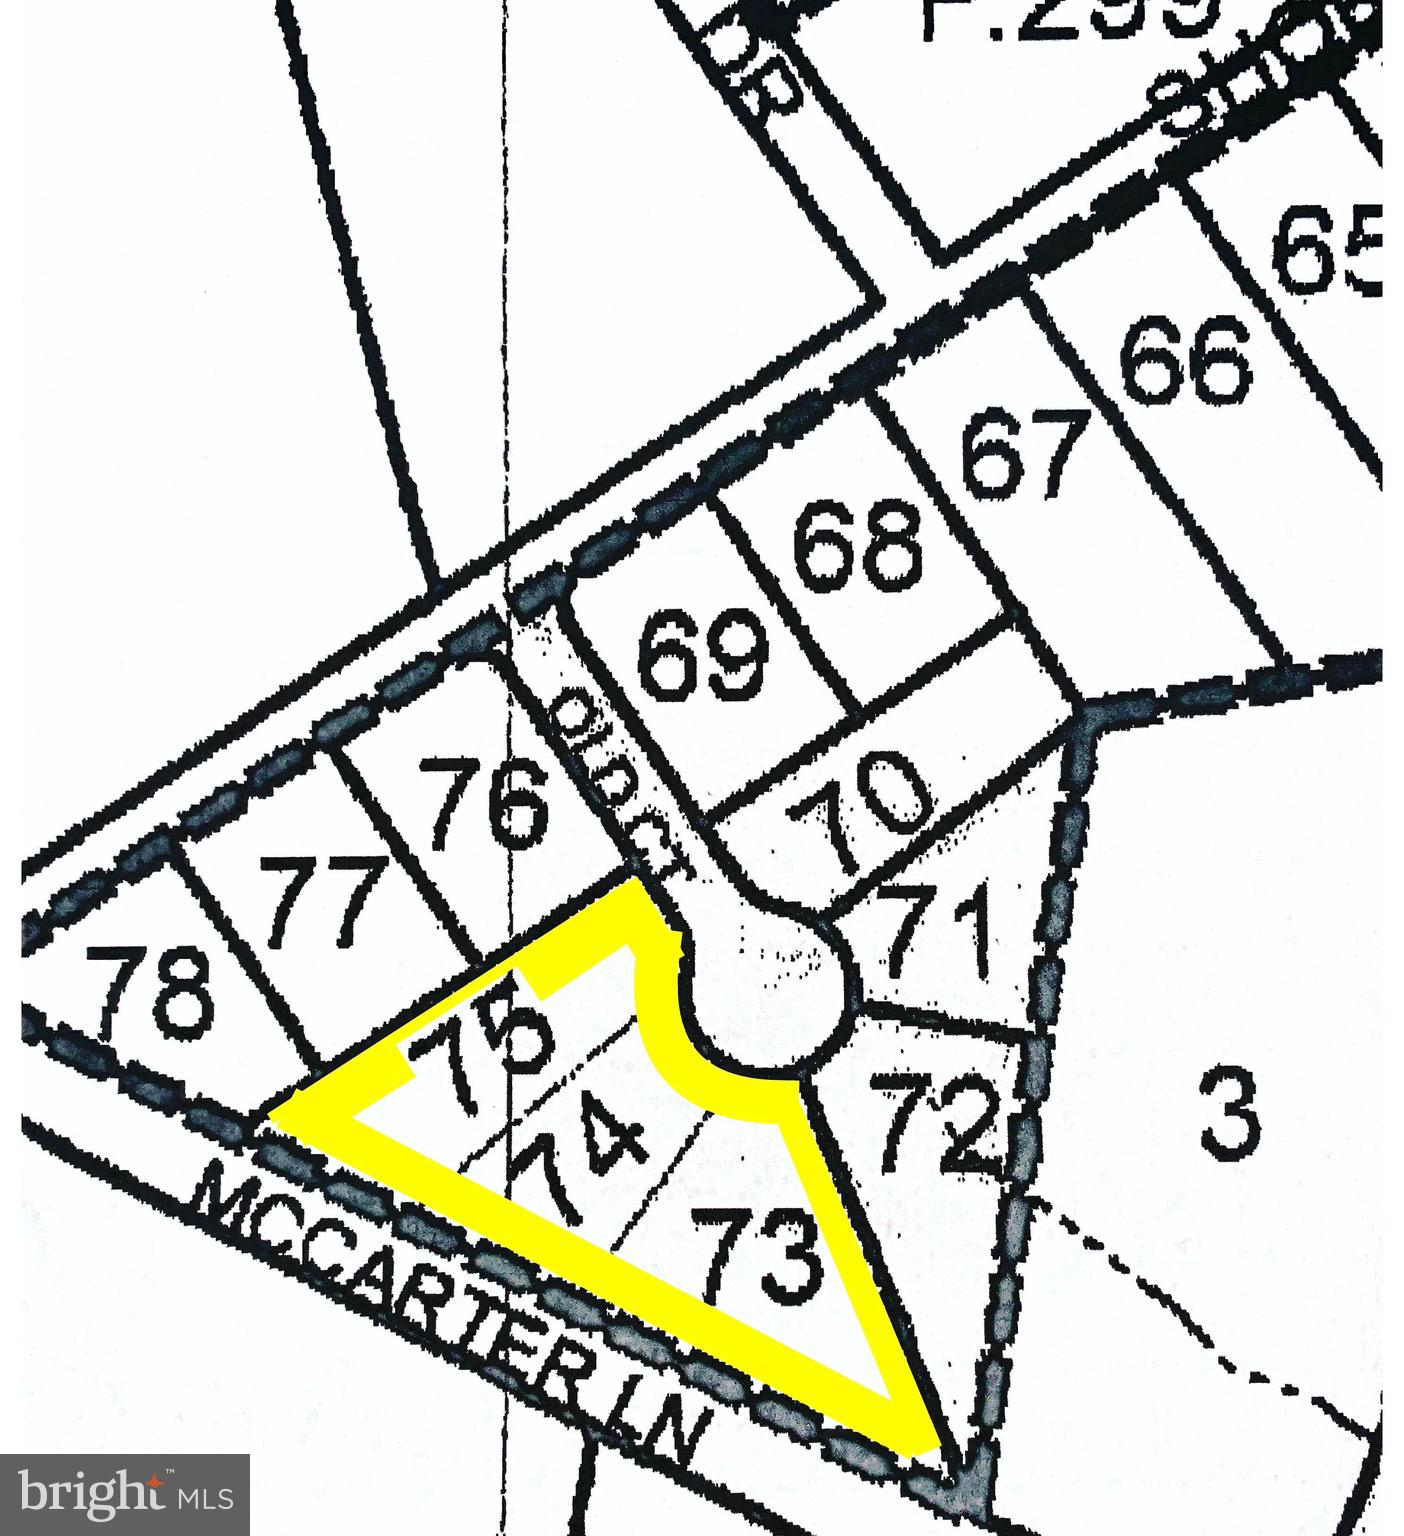 Three platted lots under one tax ID.  Lots 73, 74 and 75 AKA 1406 Old Ct.      Public Septic is available but not connected.   Property would require a well for water.   Located in Critical Area, the county planner of the day verbally stated they will allow tree removal on 30% of the lot.   No sign on property.    Old Ct is a cul-de-sac paper road located between and behind 4105 Shoreham Beach Rd and 4101 Shoreham Beach Rd.